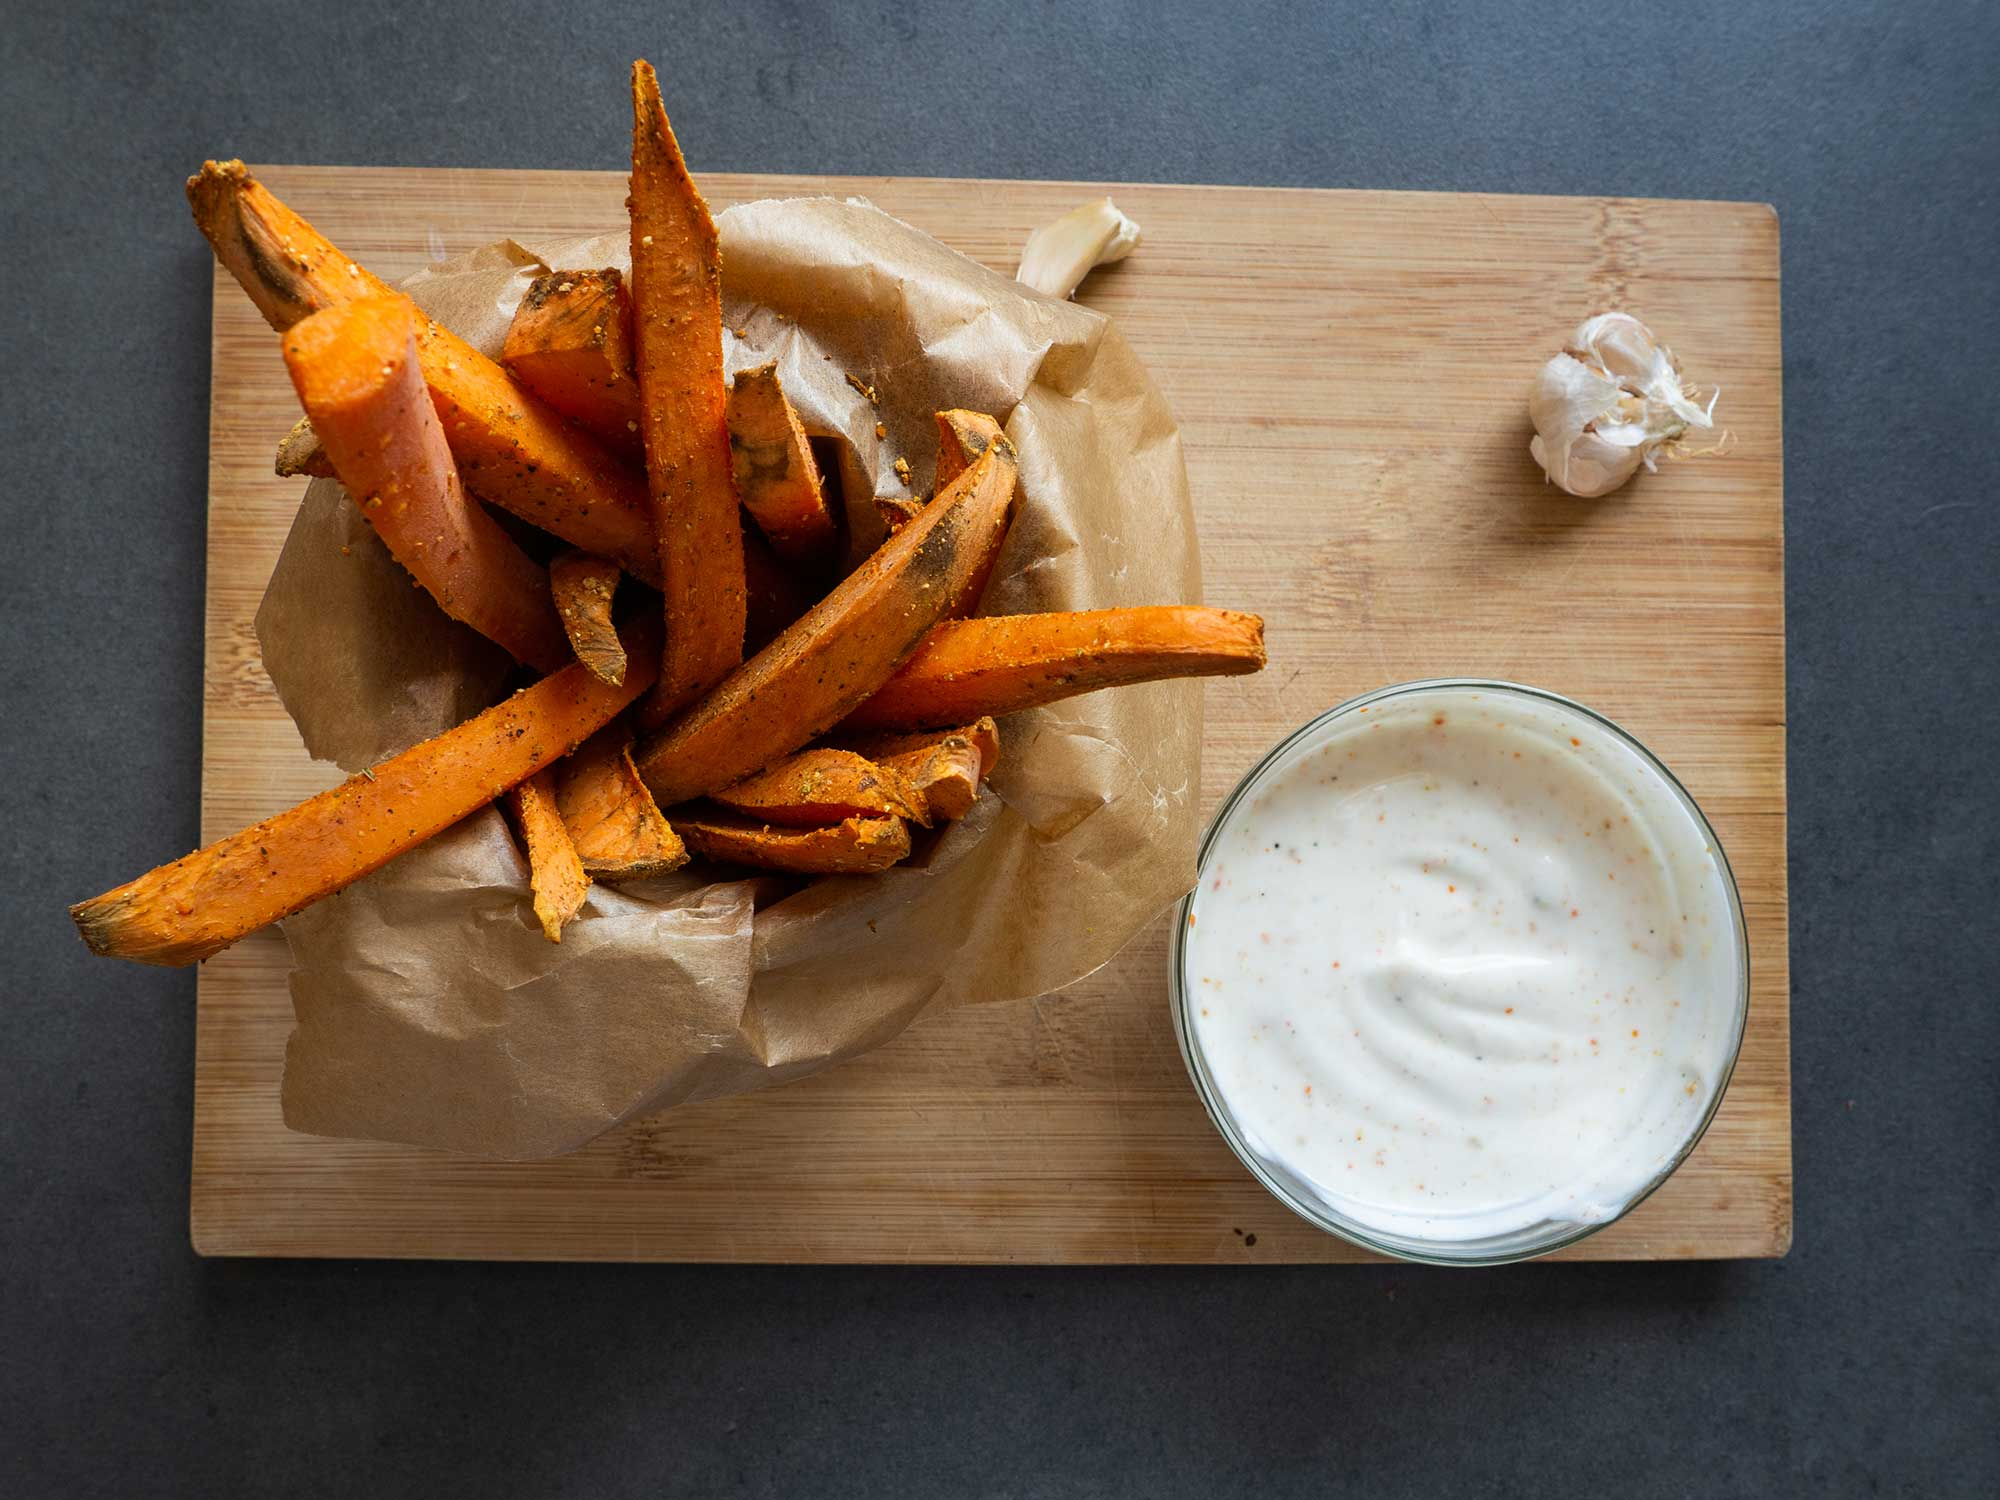 Sweet Potato Fries with Garlic Dip